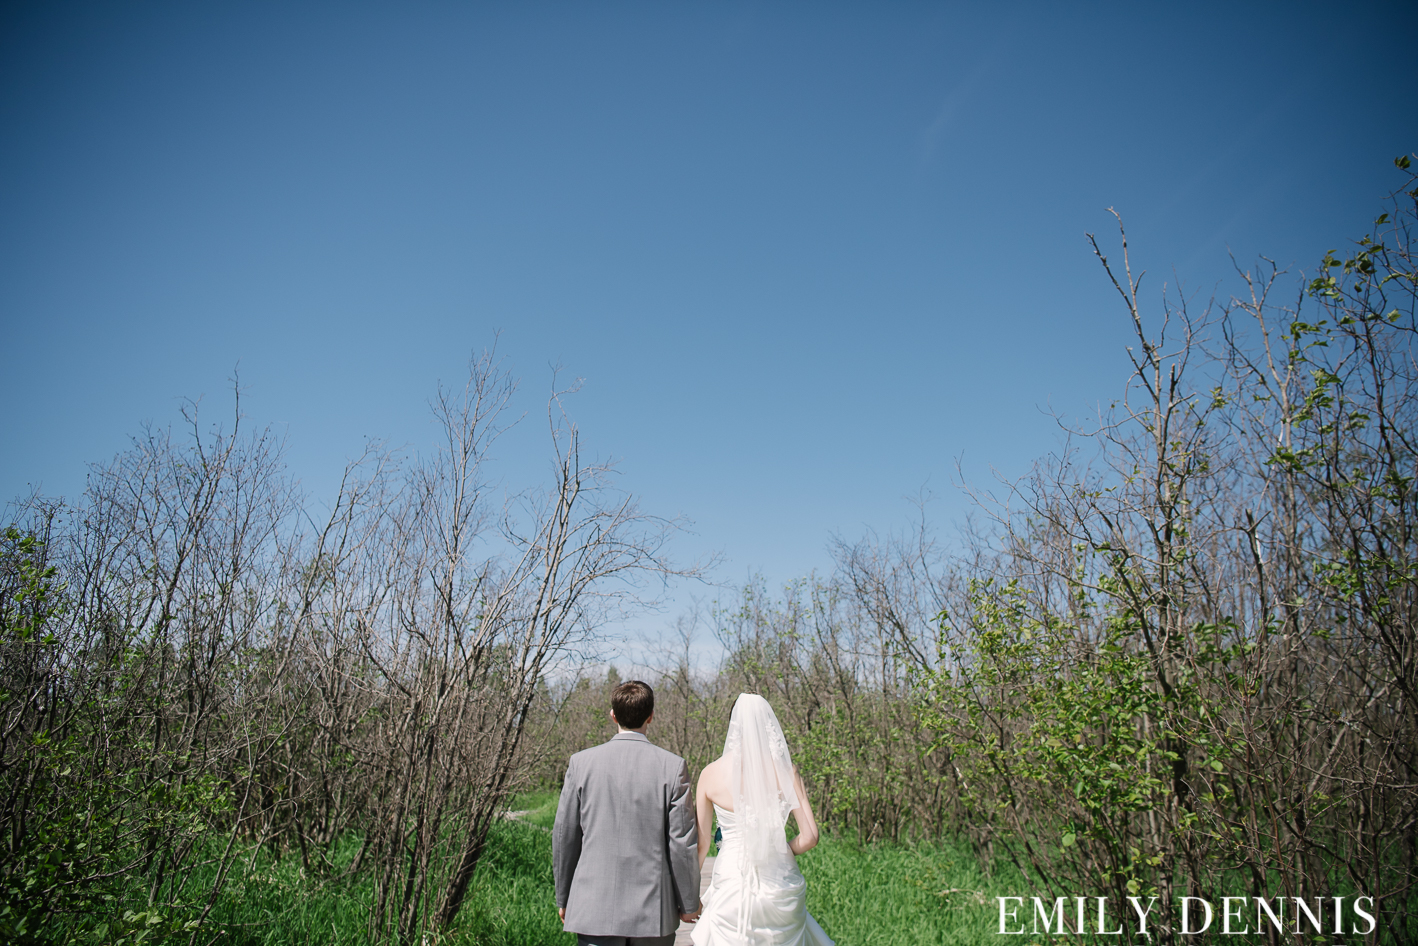 EMILY_DENNIS_PHOTOGRAPHY-73